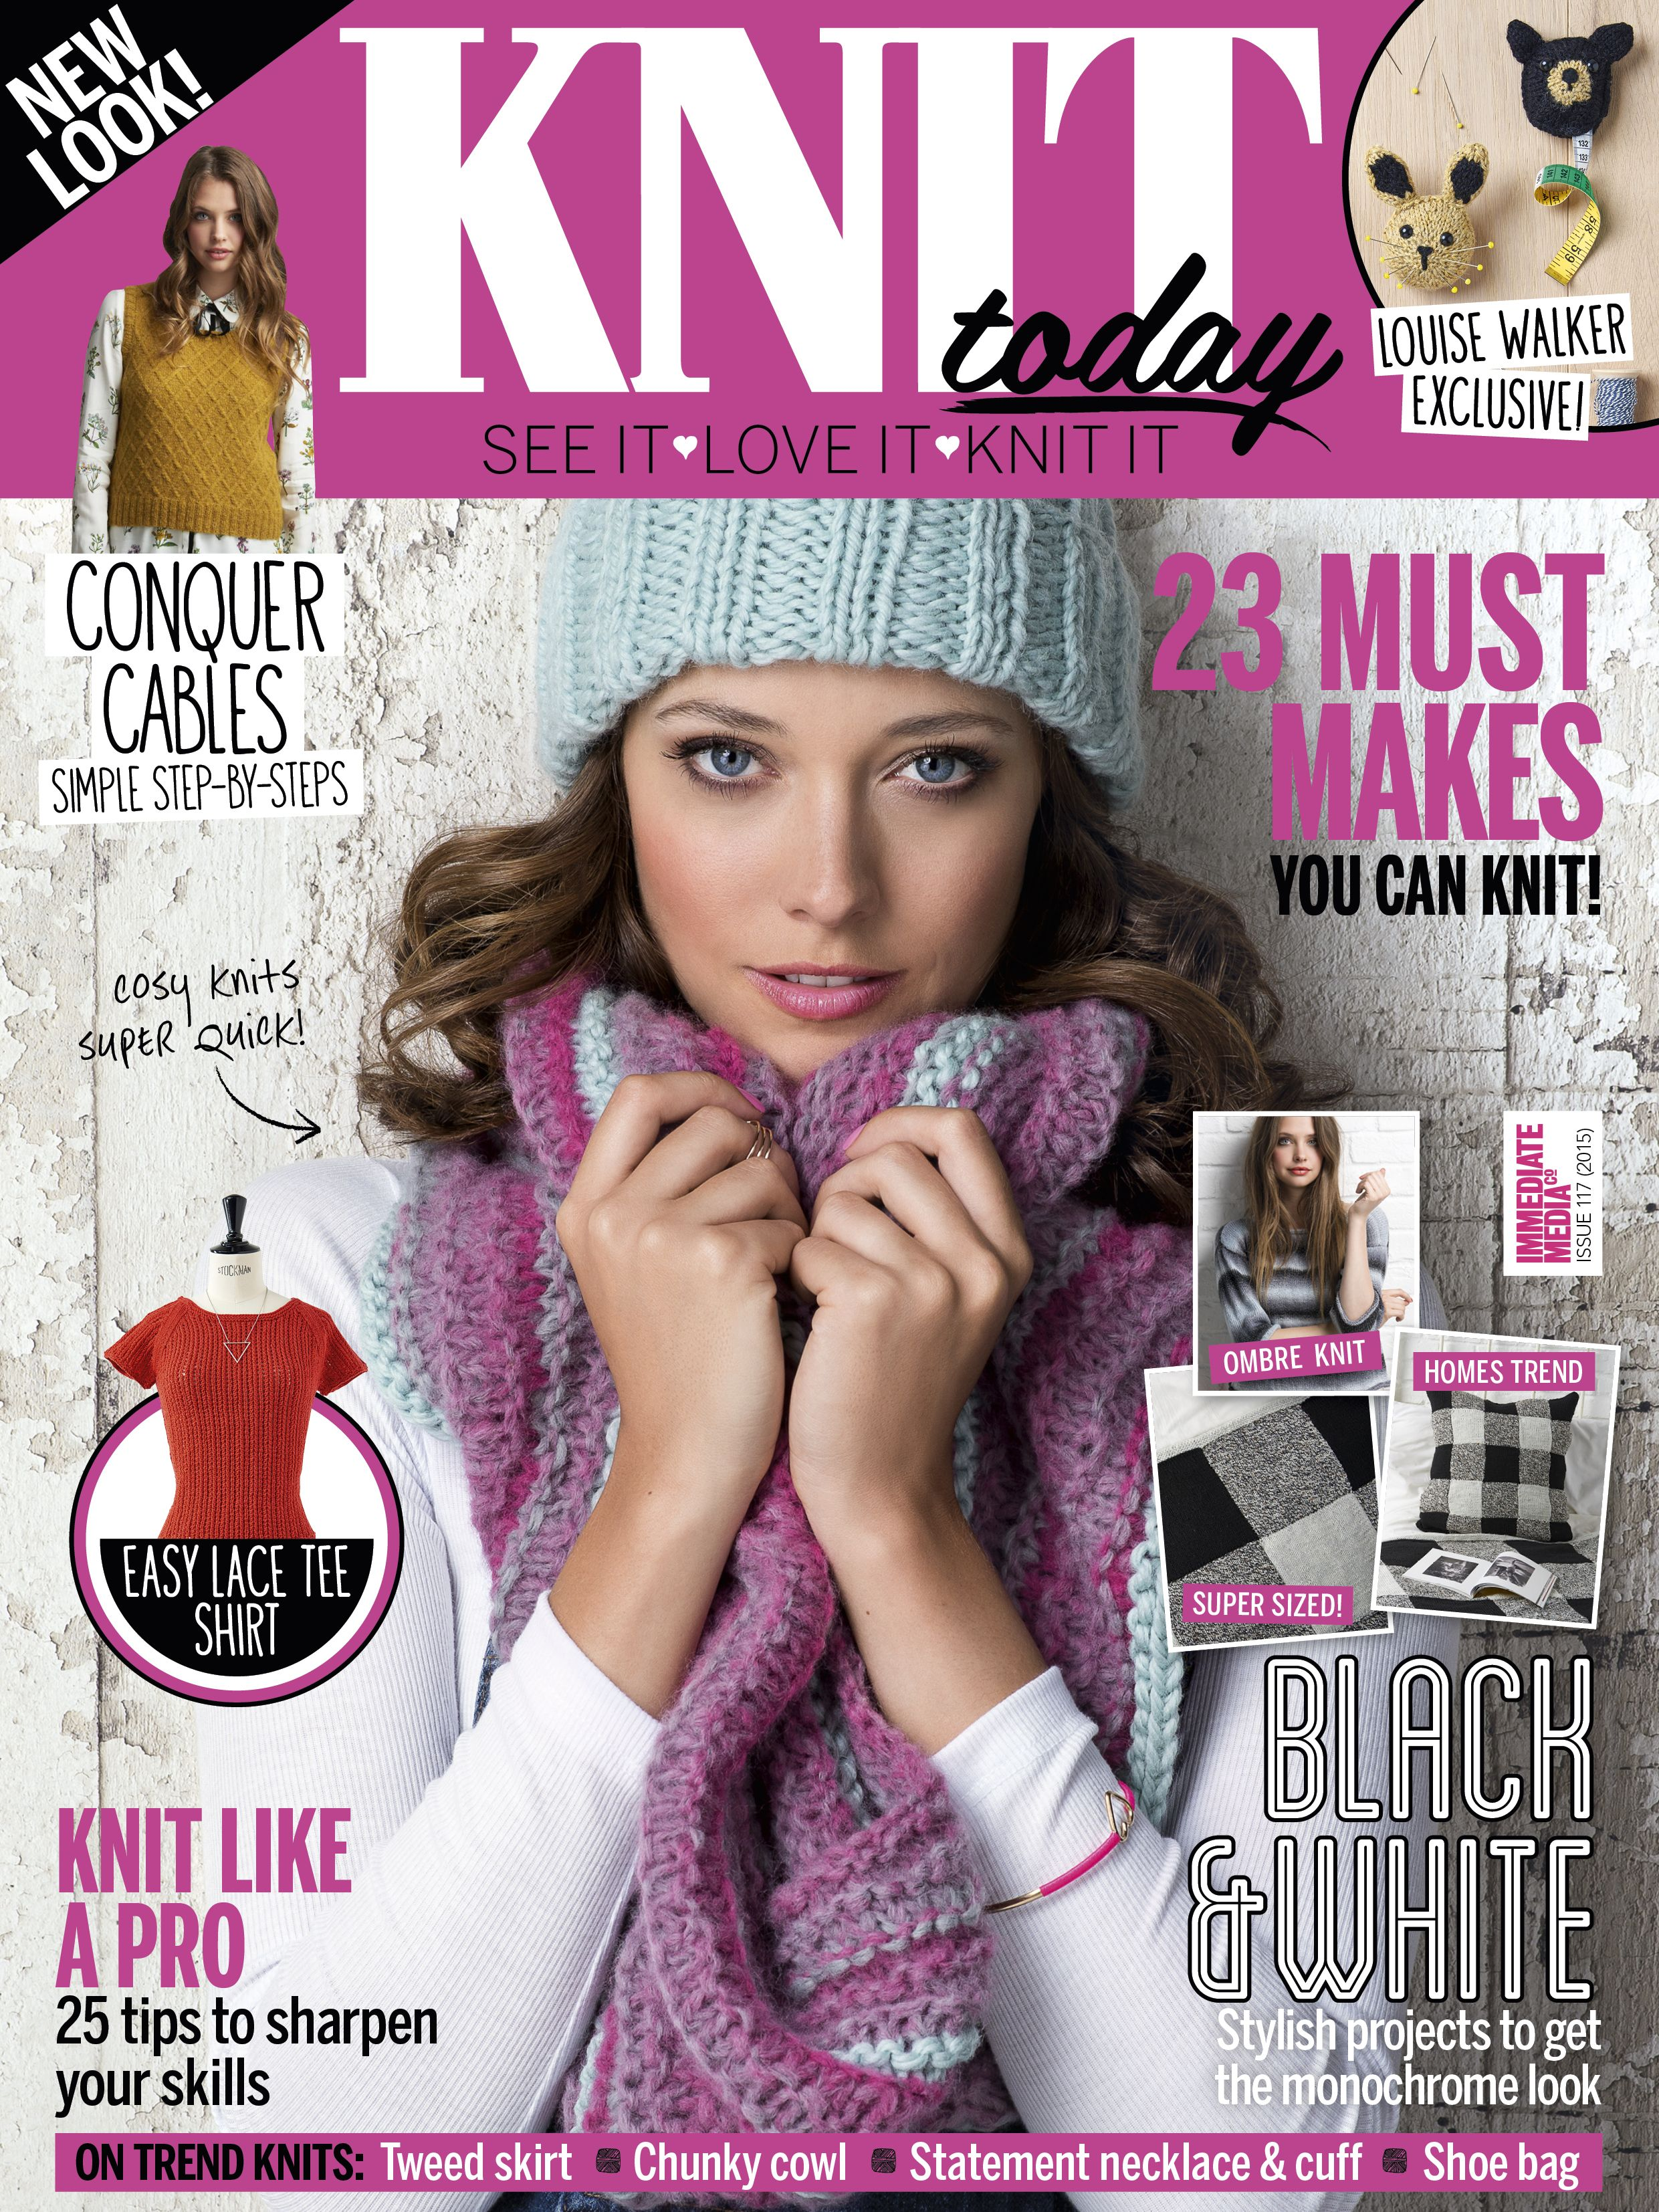 Enjoy The Brand New Look Knit Today Magazine Aimed At Beginners And